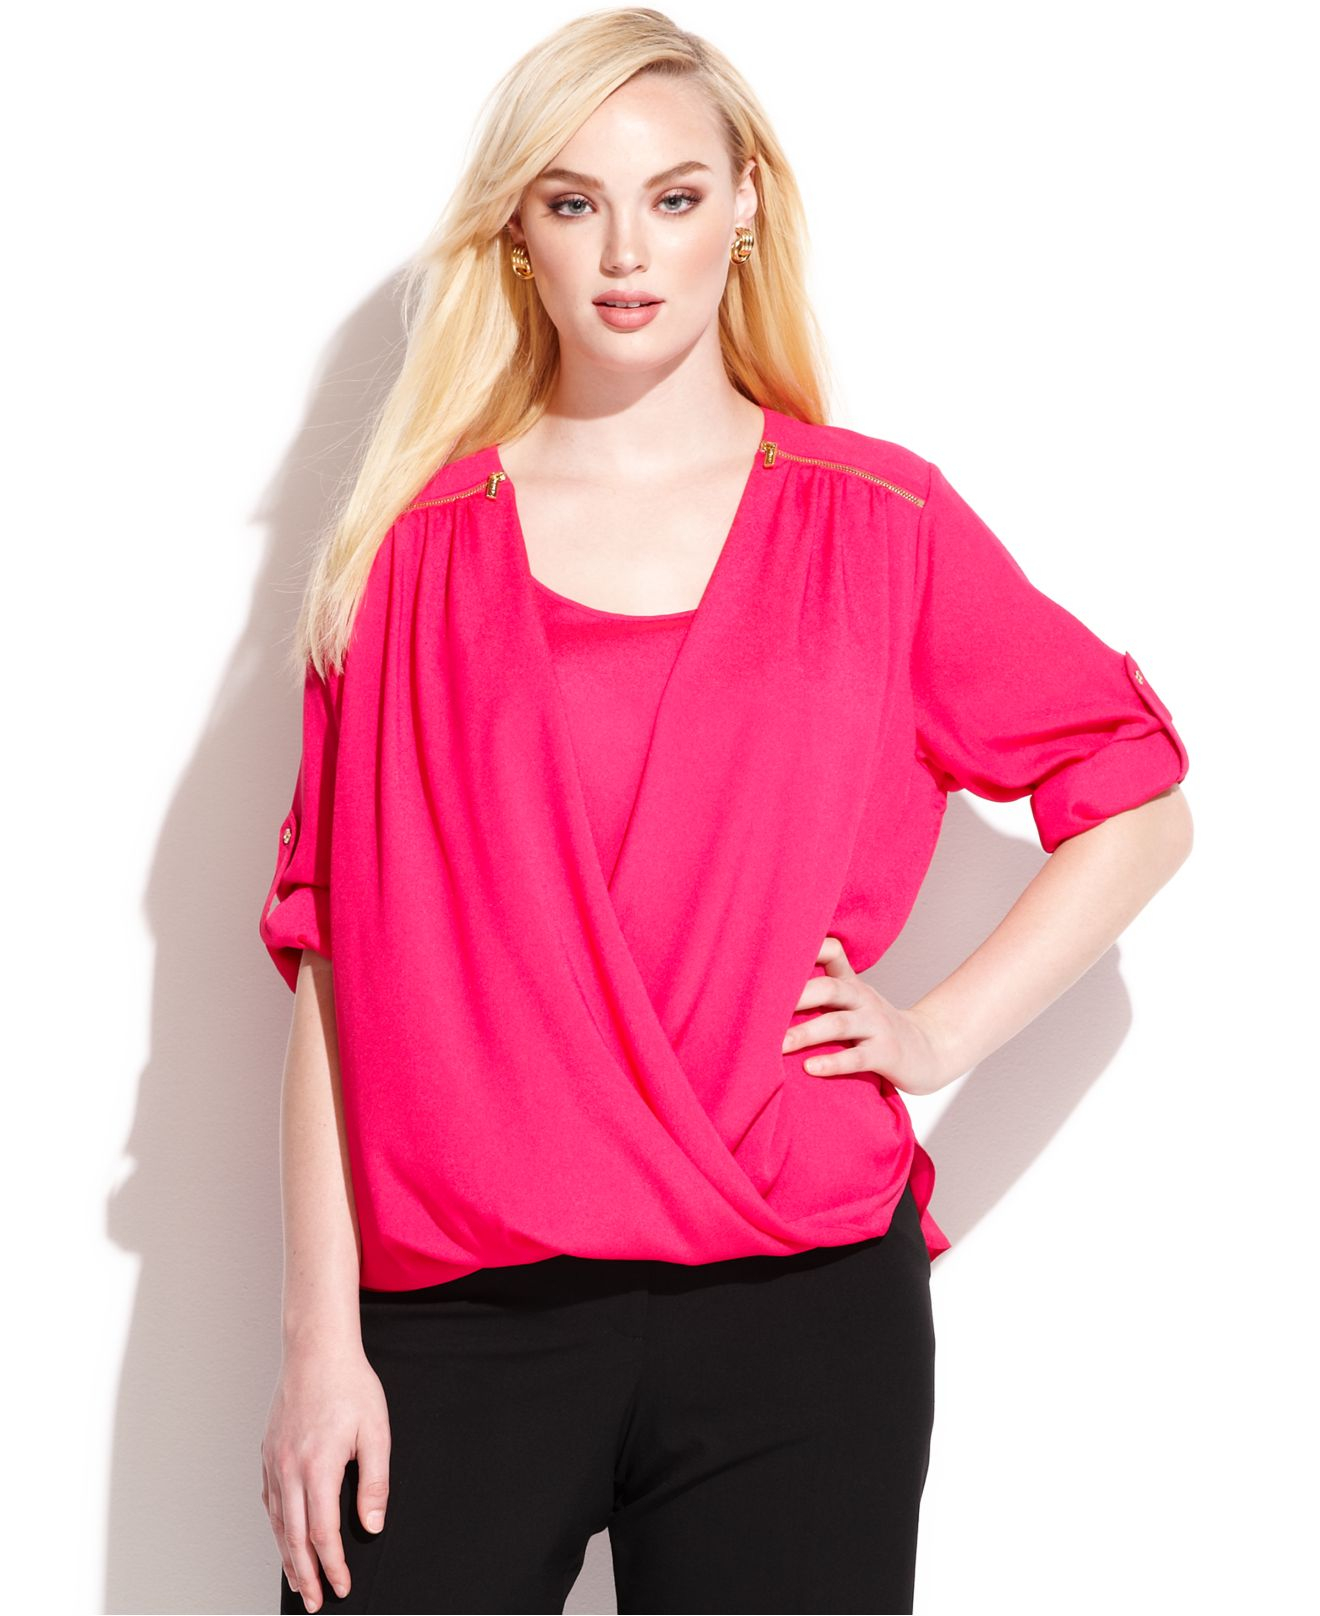 ad8e49b1277 Lyst - Calvin Klein Plus Size Roll-Tab-Sleeve Draped Blouse in Pink